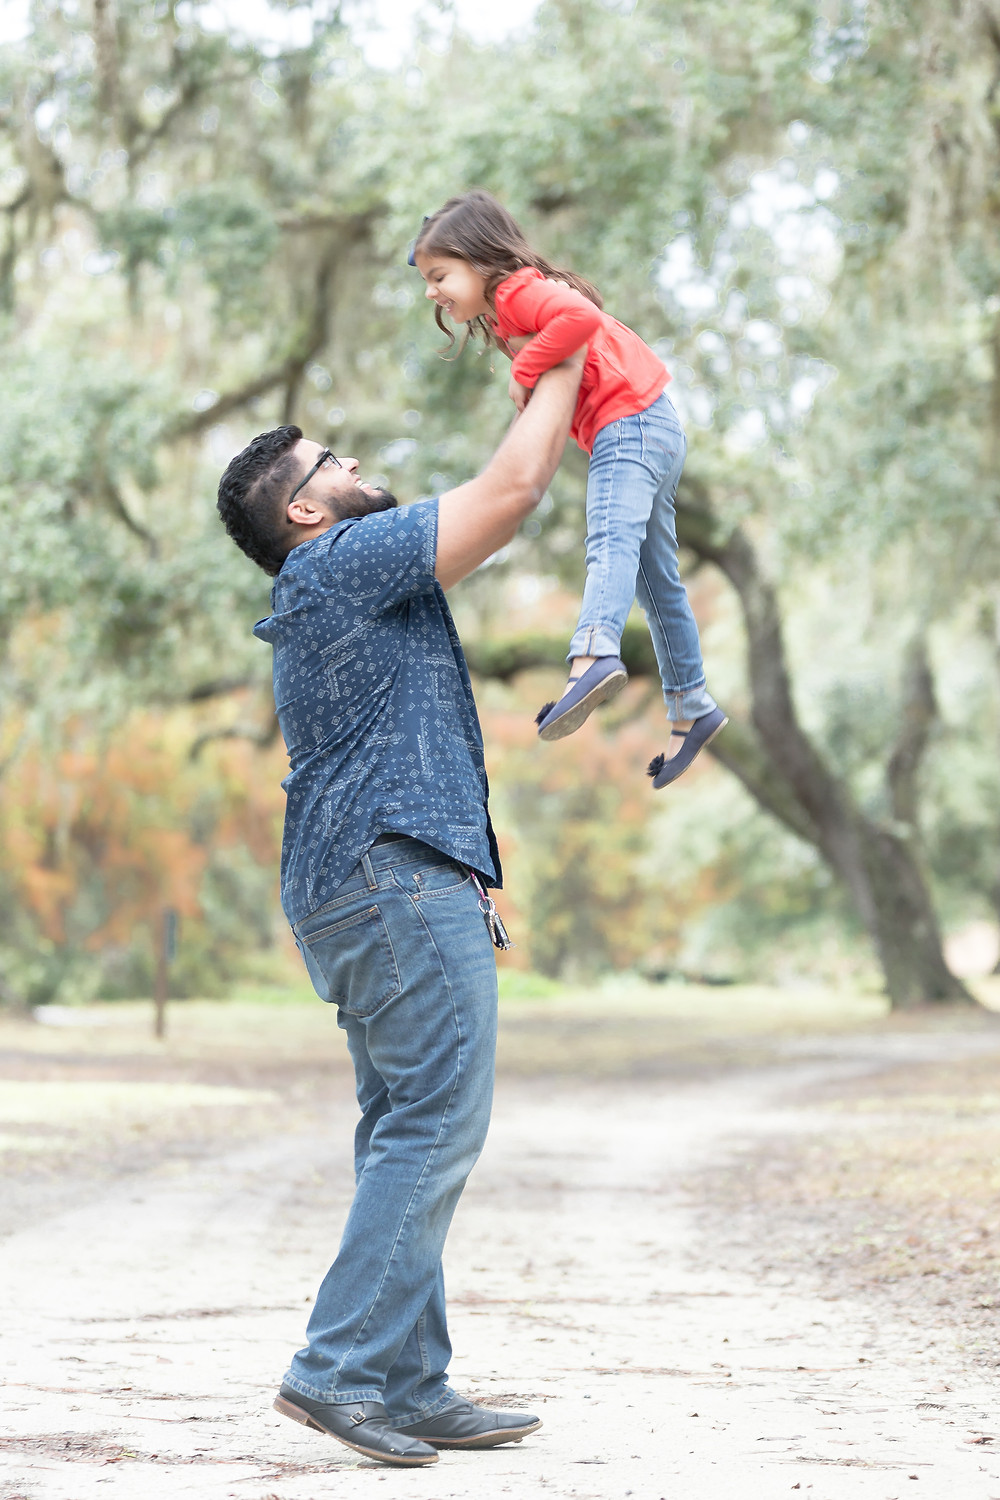 Father throws daughter in the air.